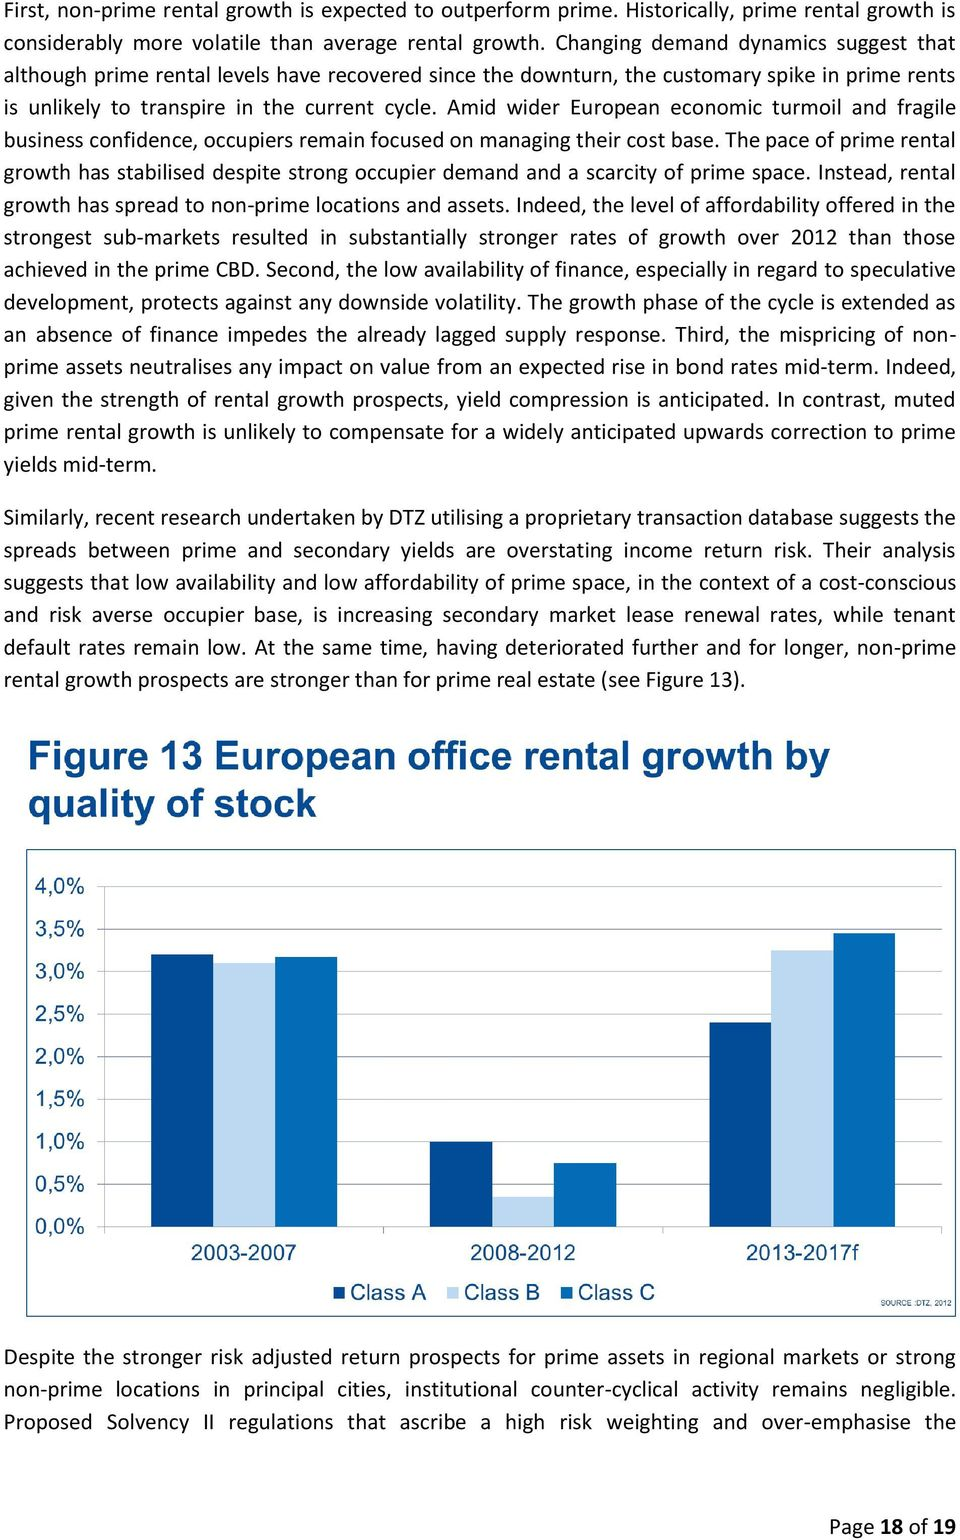 Amid wider European economic turmoil and fragile business confidence, occupiers remain focused on managing their cost base.